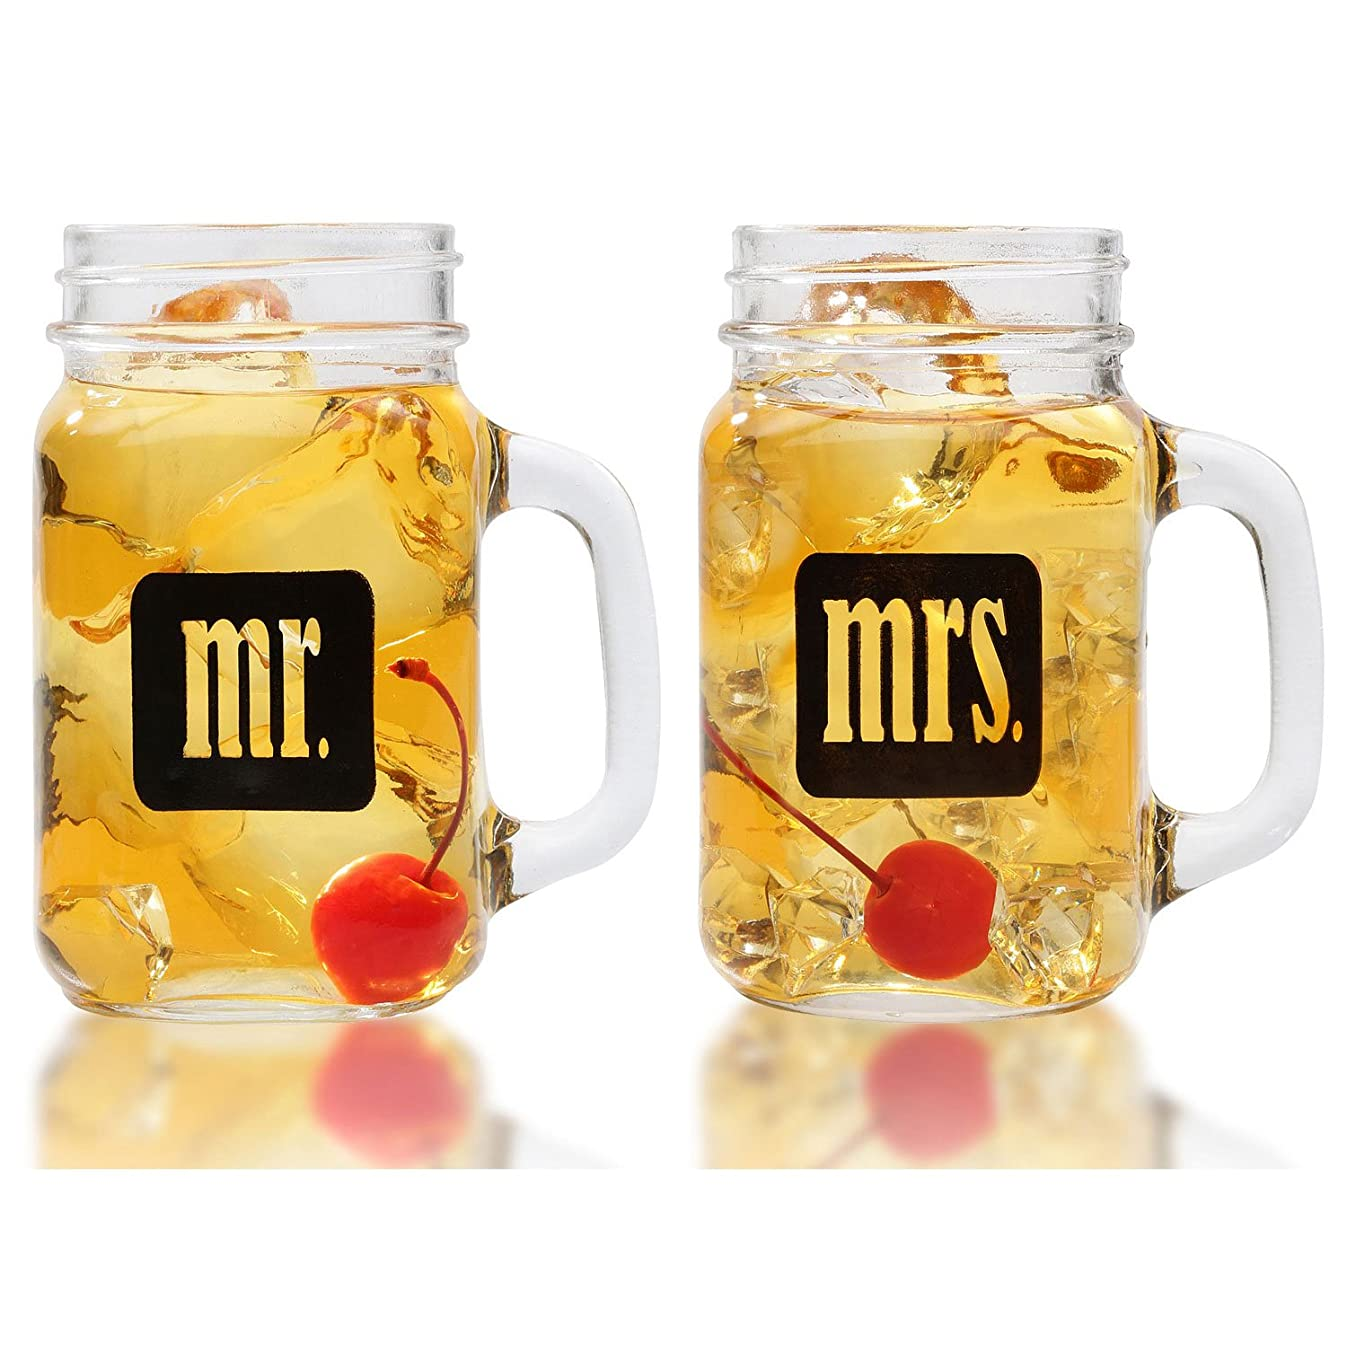 Mr. & Mrs. Mason Jars - Glass Drinking Glasses Set With Gift Box - For Couples - Engagement, Wedding, Anniversary, House Warming, Hostess Gift, 16 oz